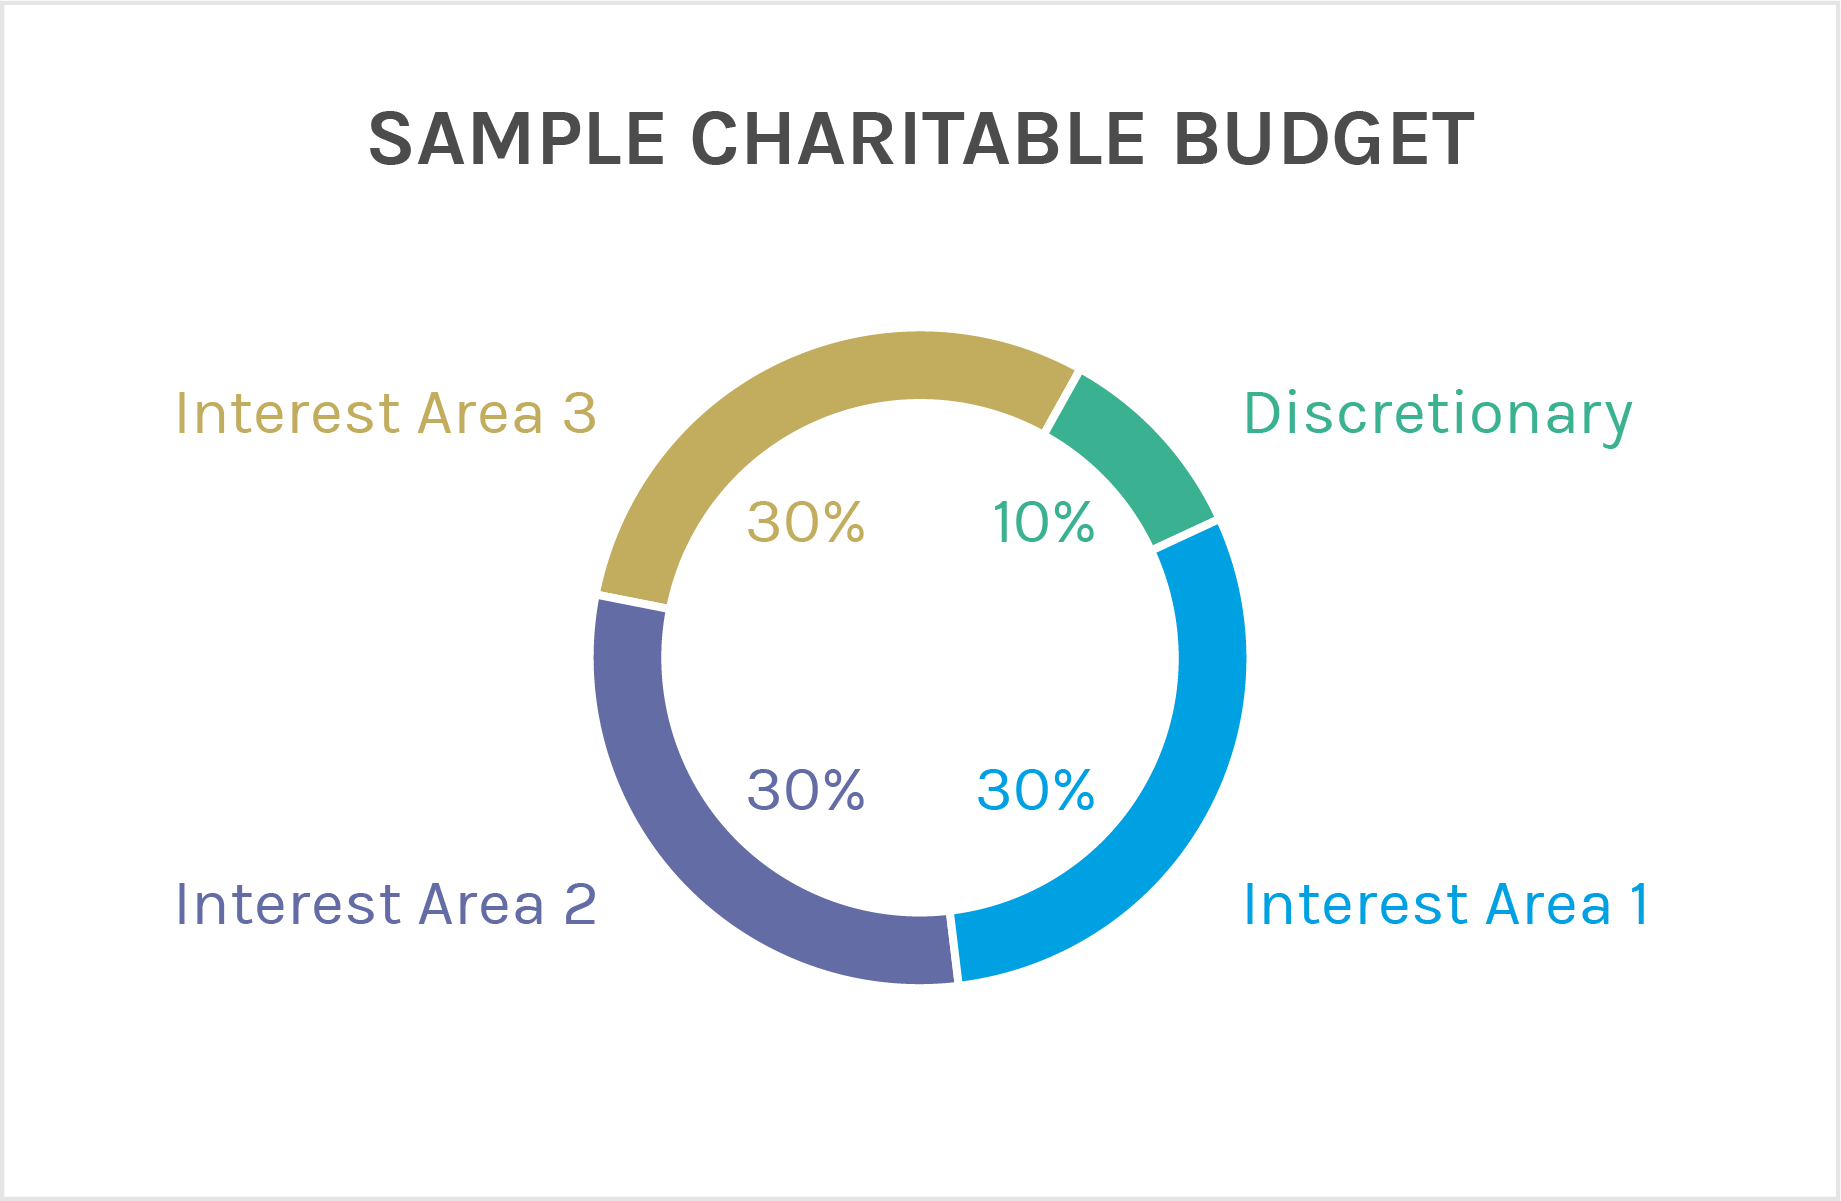 Sample Charitable Budget.  Pie chart. Section 1, Interest Area 1, 30% Section 2, Interest Area 2, 30% Section 3, Interest Area 3, 30% Section 4, Discretionary, 10%